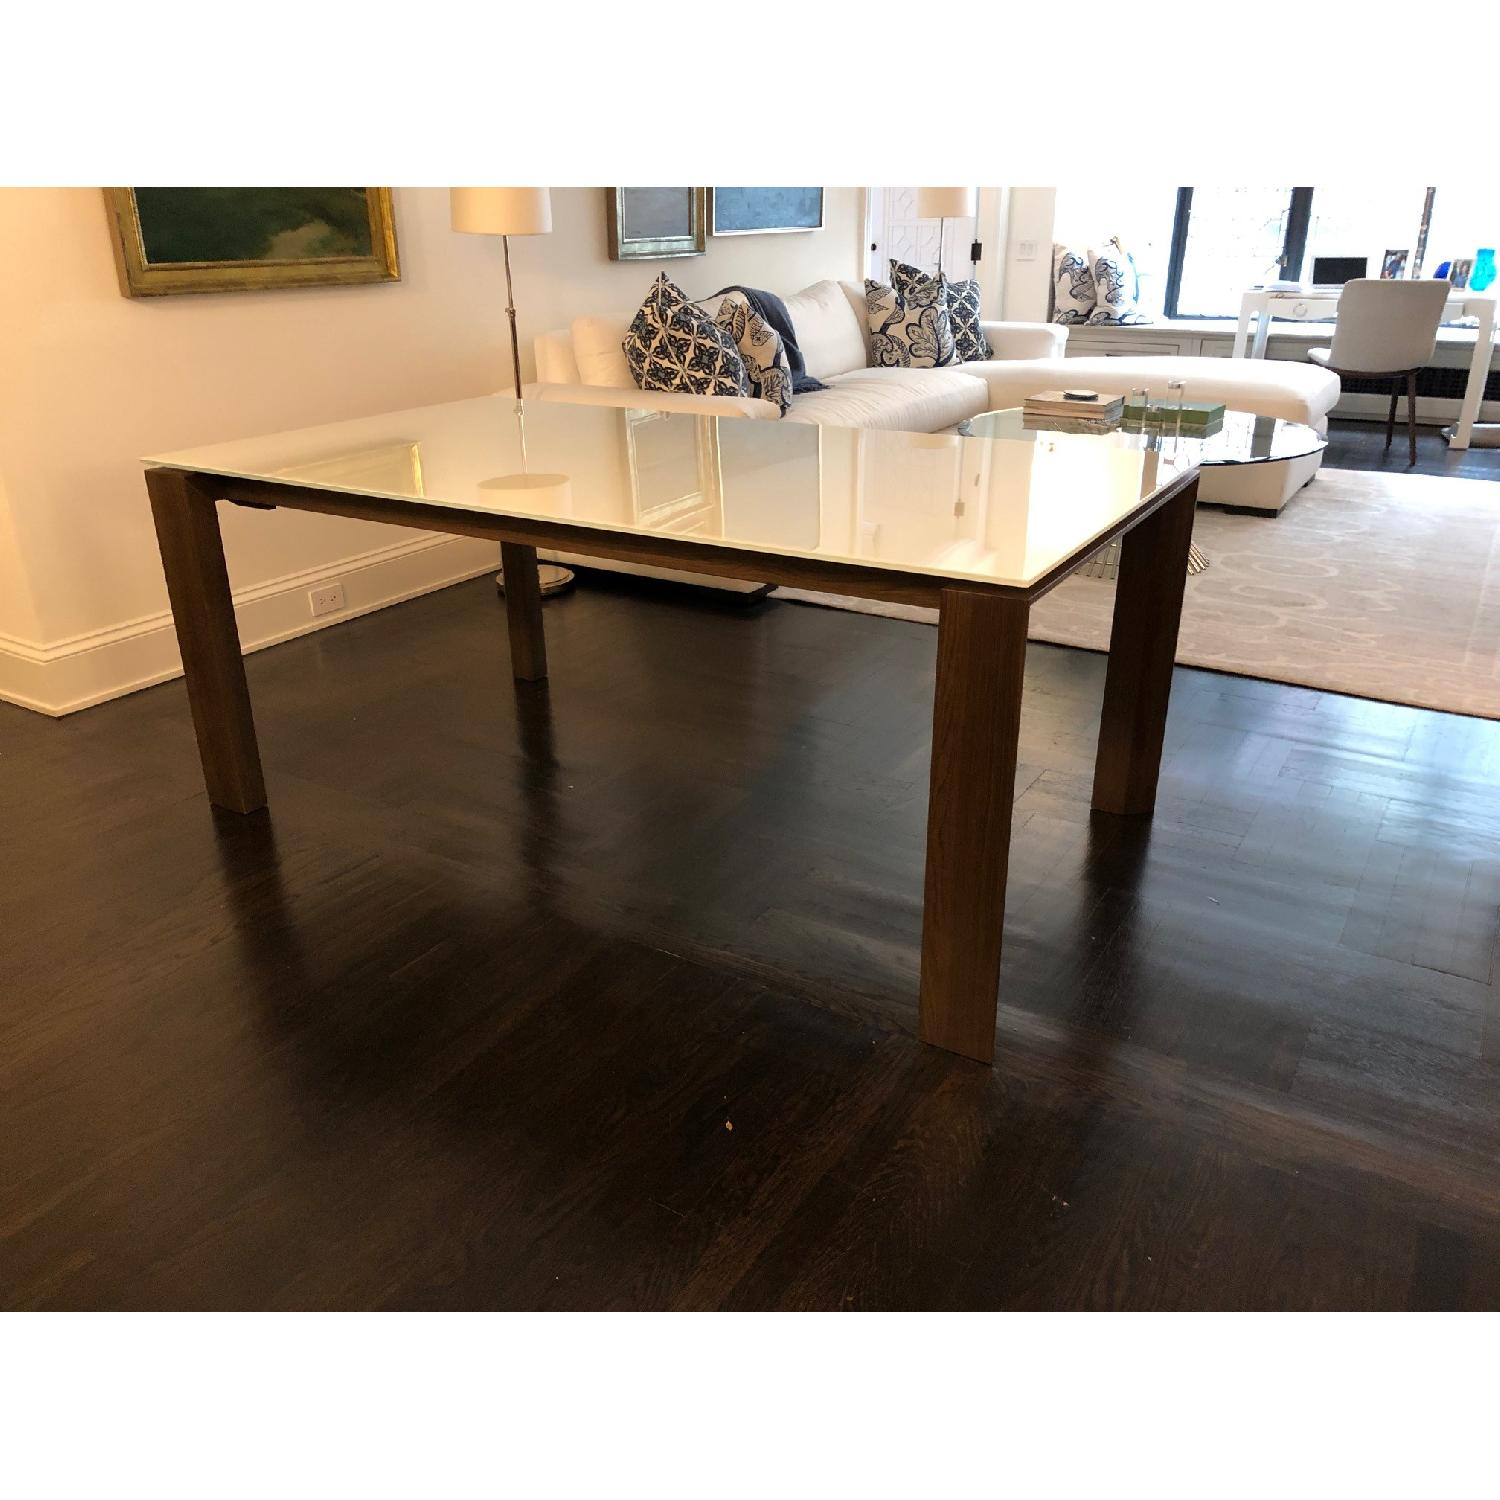 Calligaris Omnia Extendable Table w/ White Glass Top - image-3